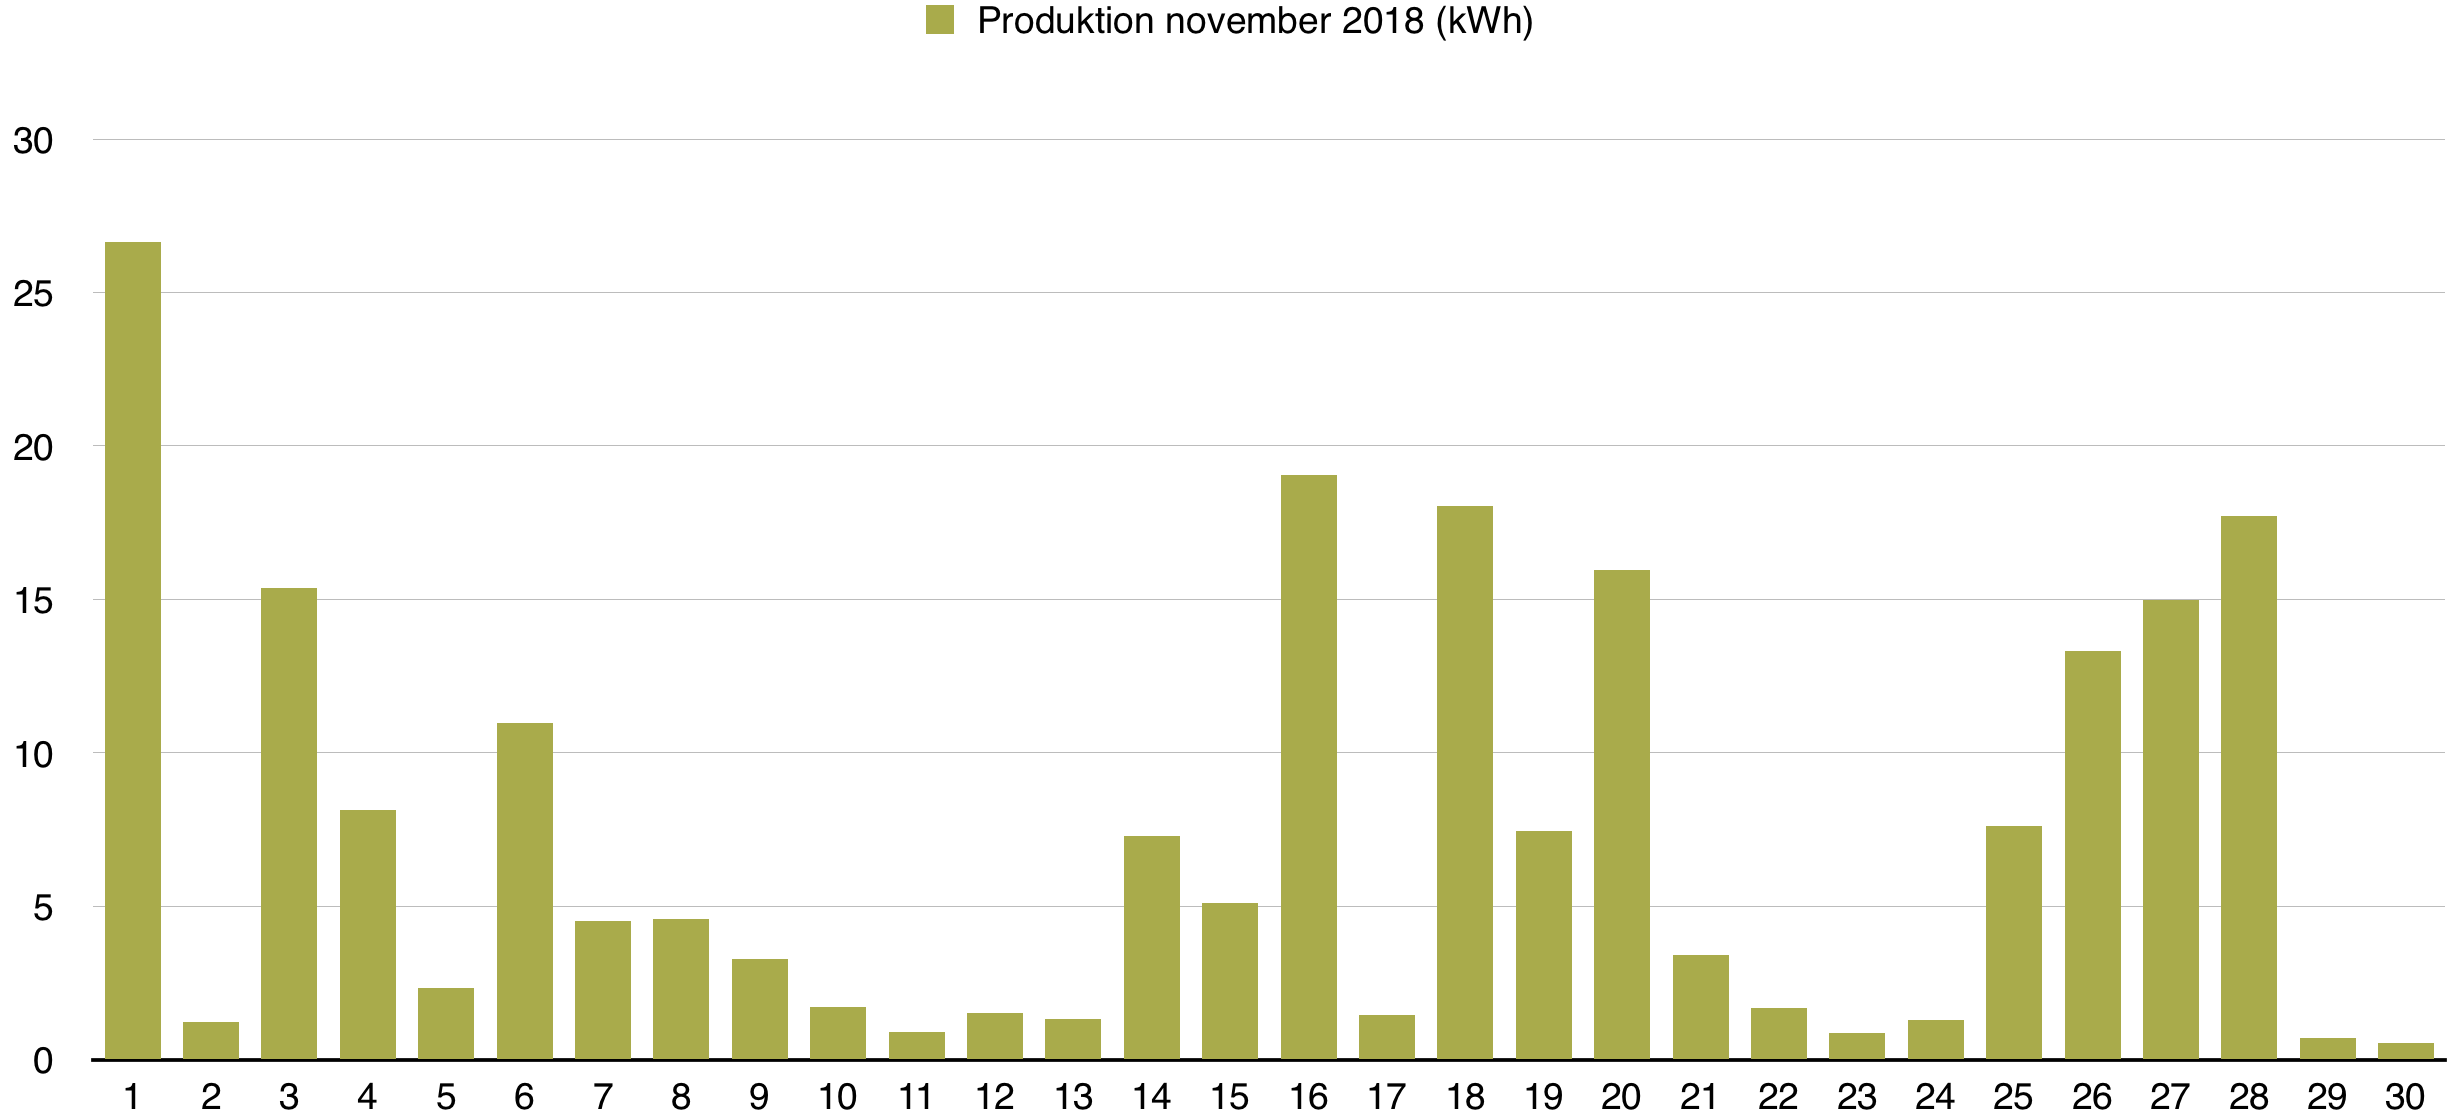 Solceller - Dagsproduktion för november 2018